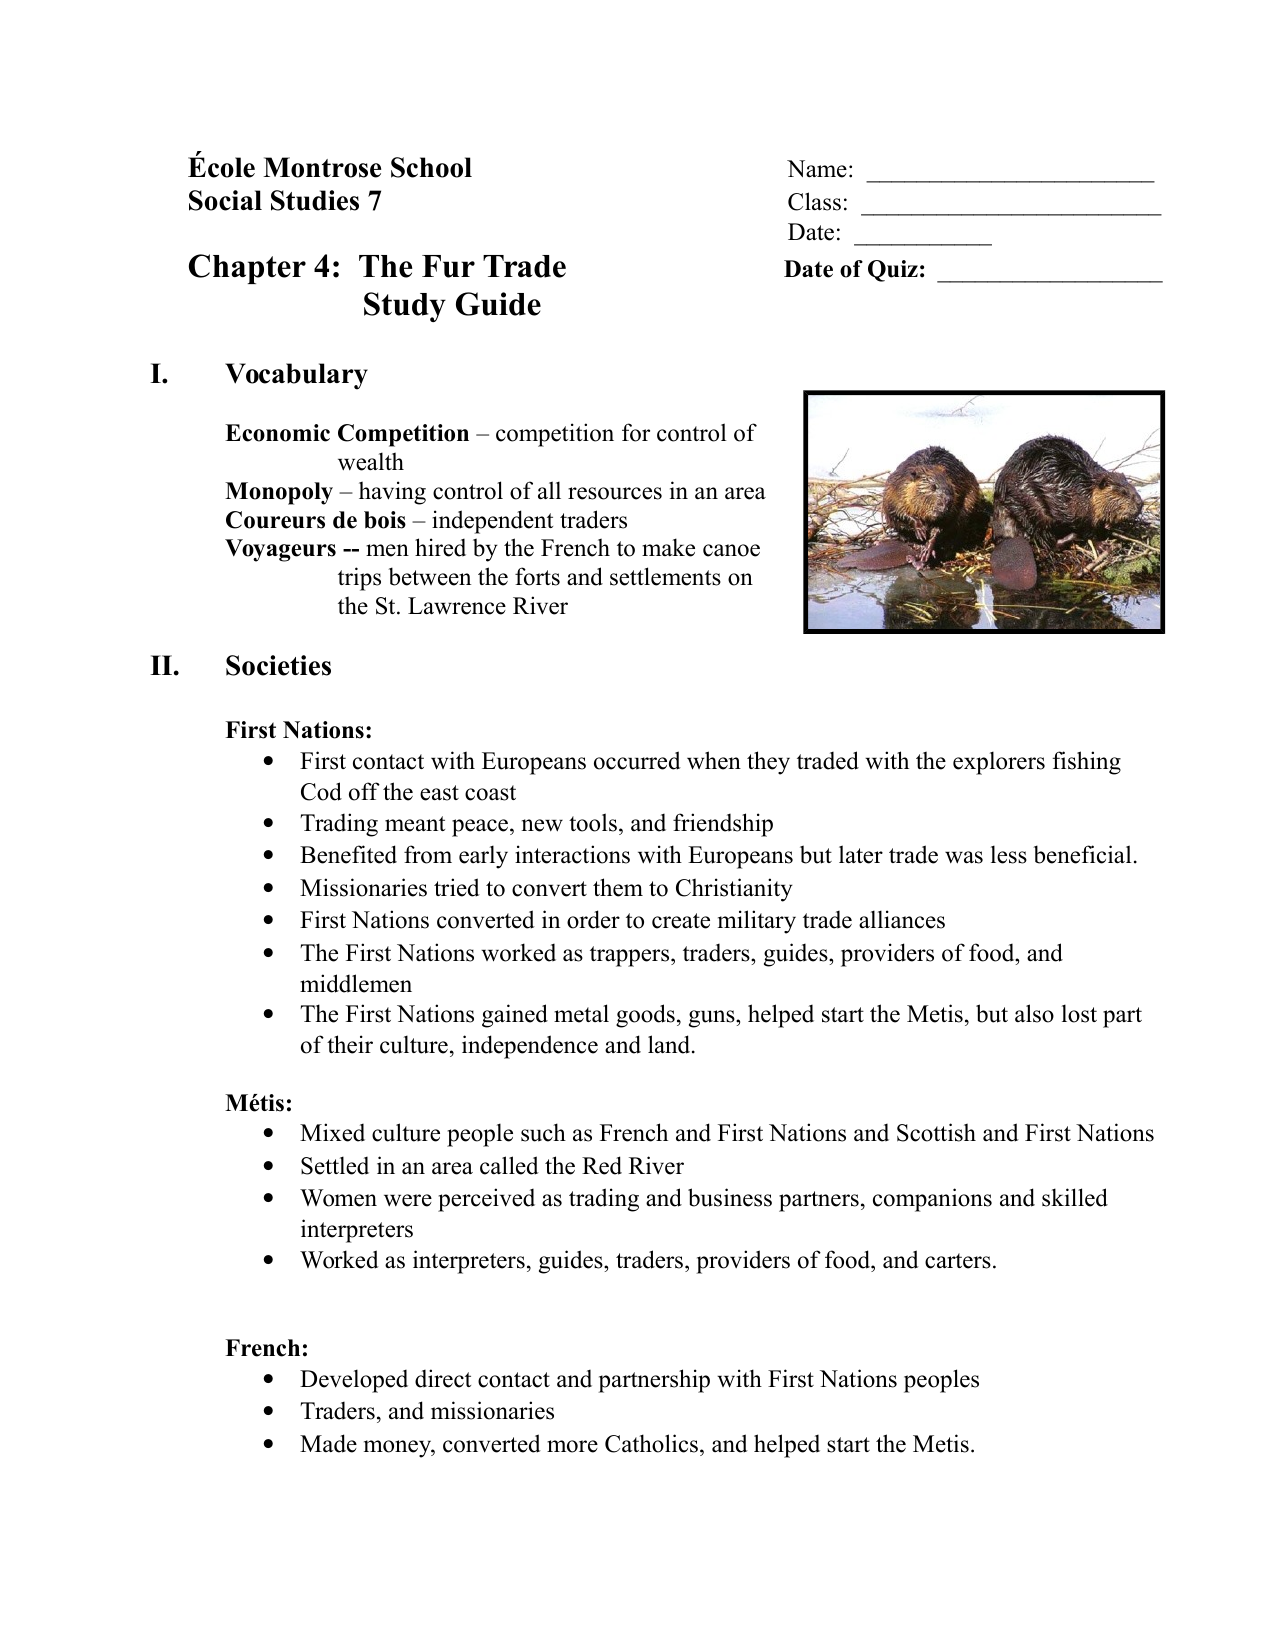 Our Canada Chapter 4 Study Guide Resource Preview